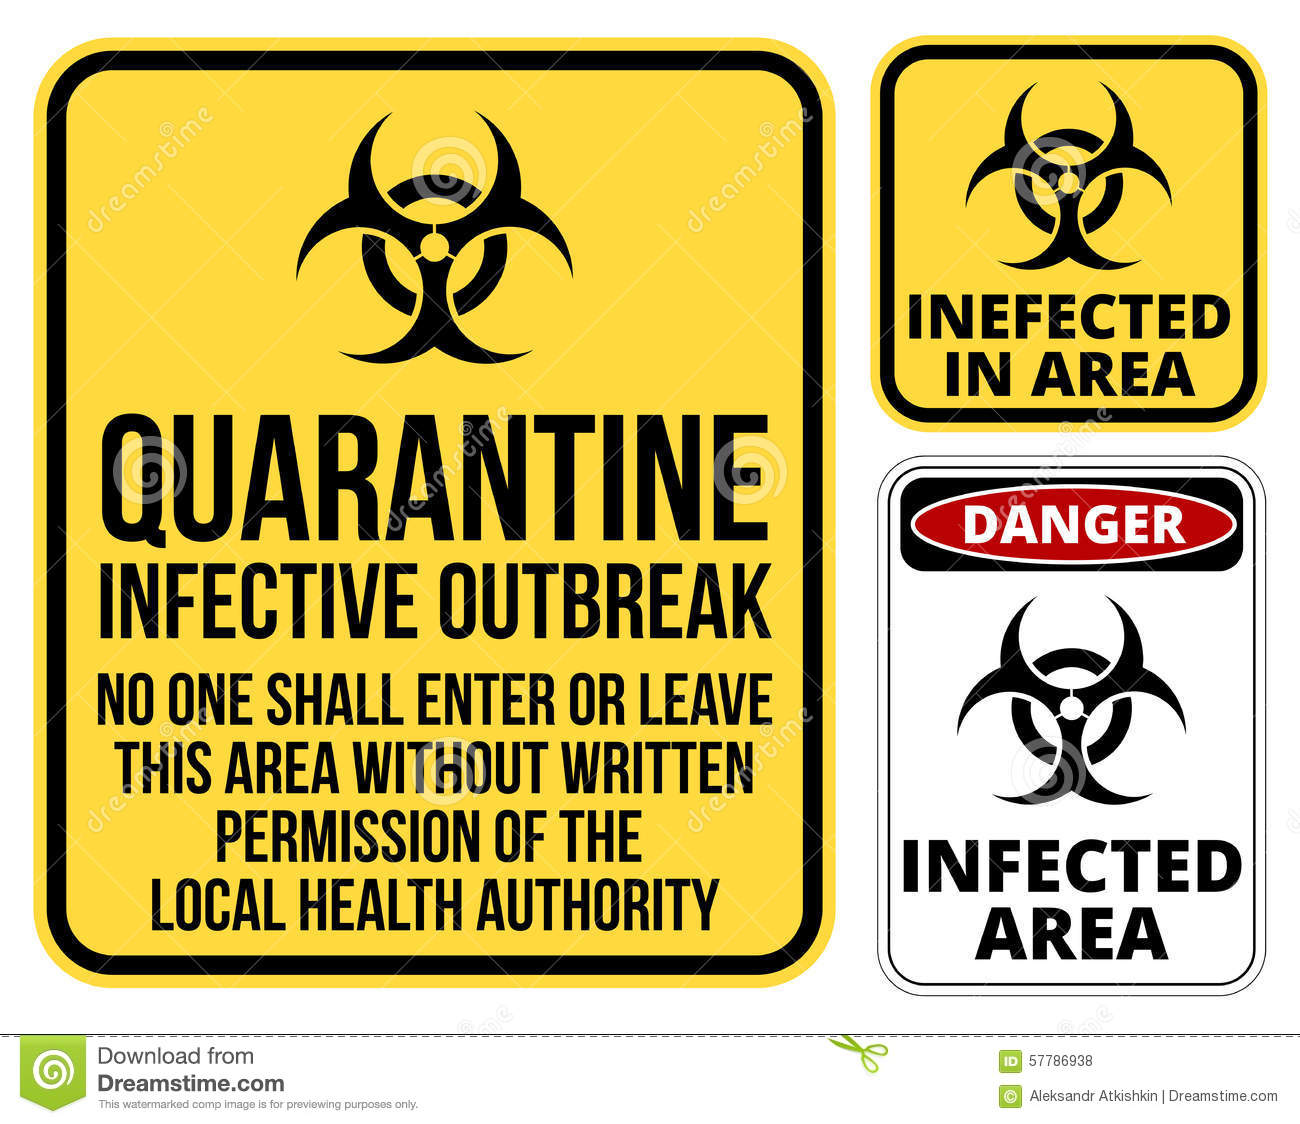 Quarantine stock illustrations 644 quarantine stock illustrations quarantine stock illustrations 644 quarantine stock illustrations vectors clipart dreamstime biocorpaavc Image collections